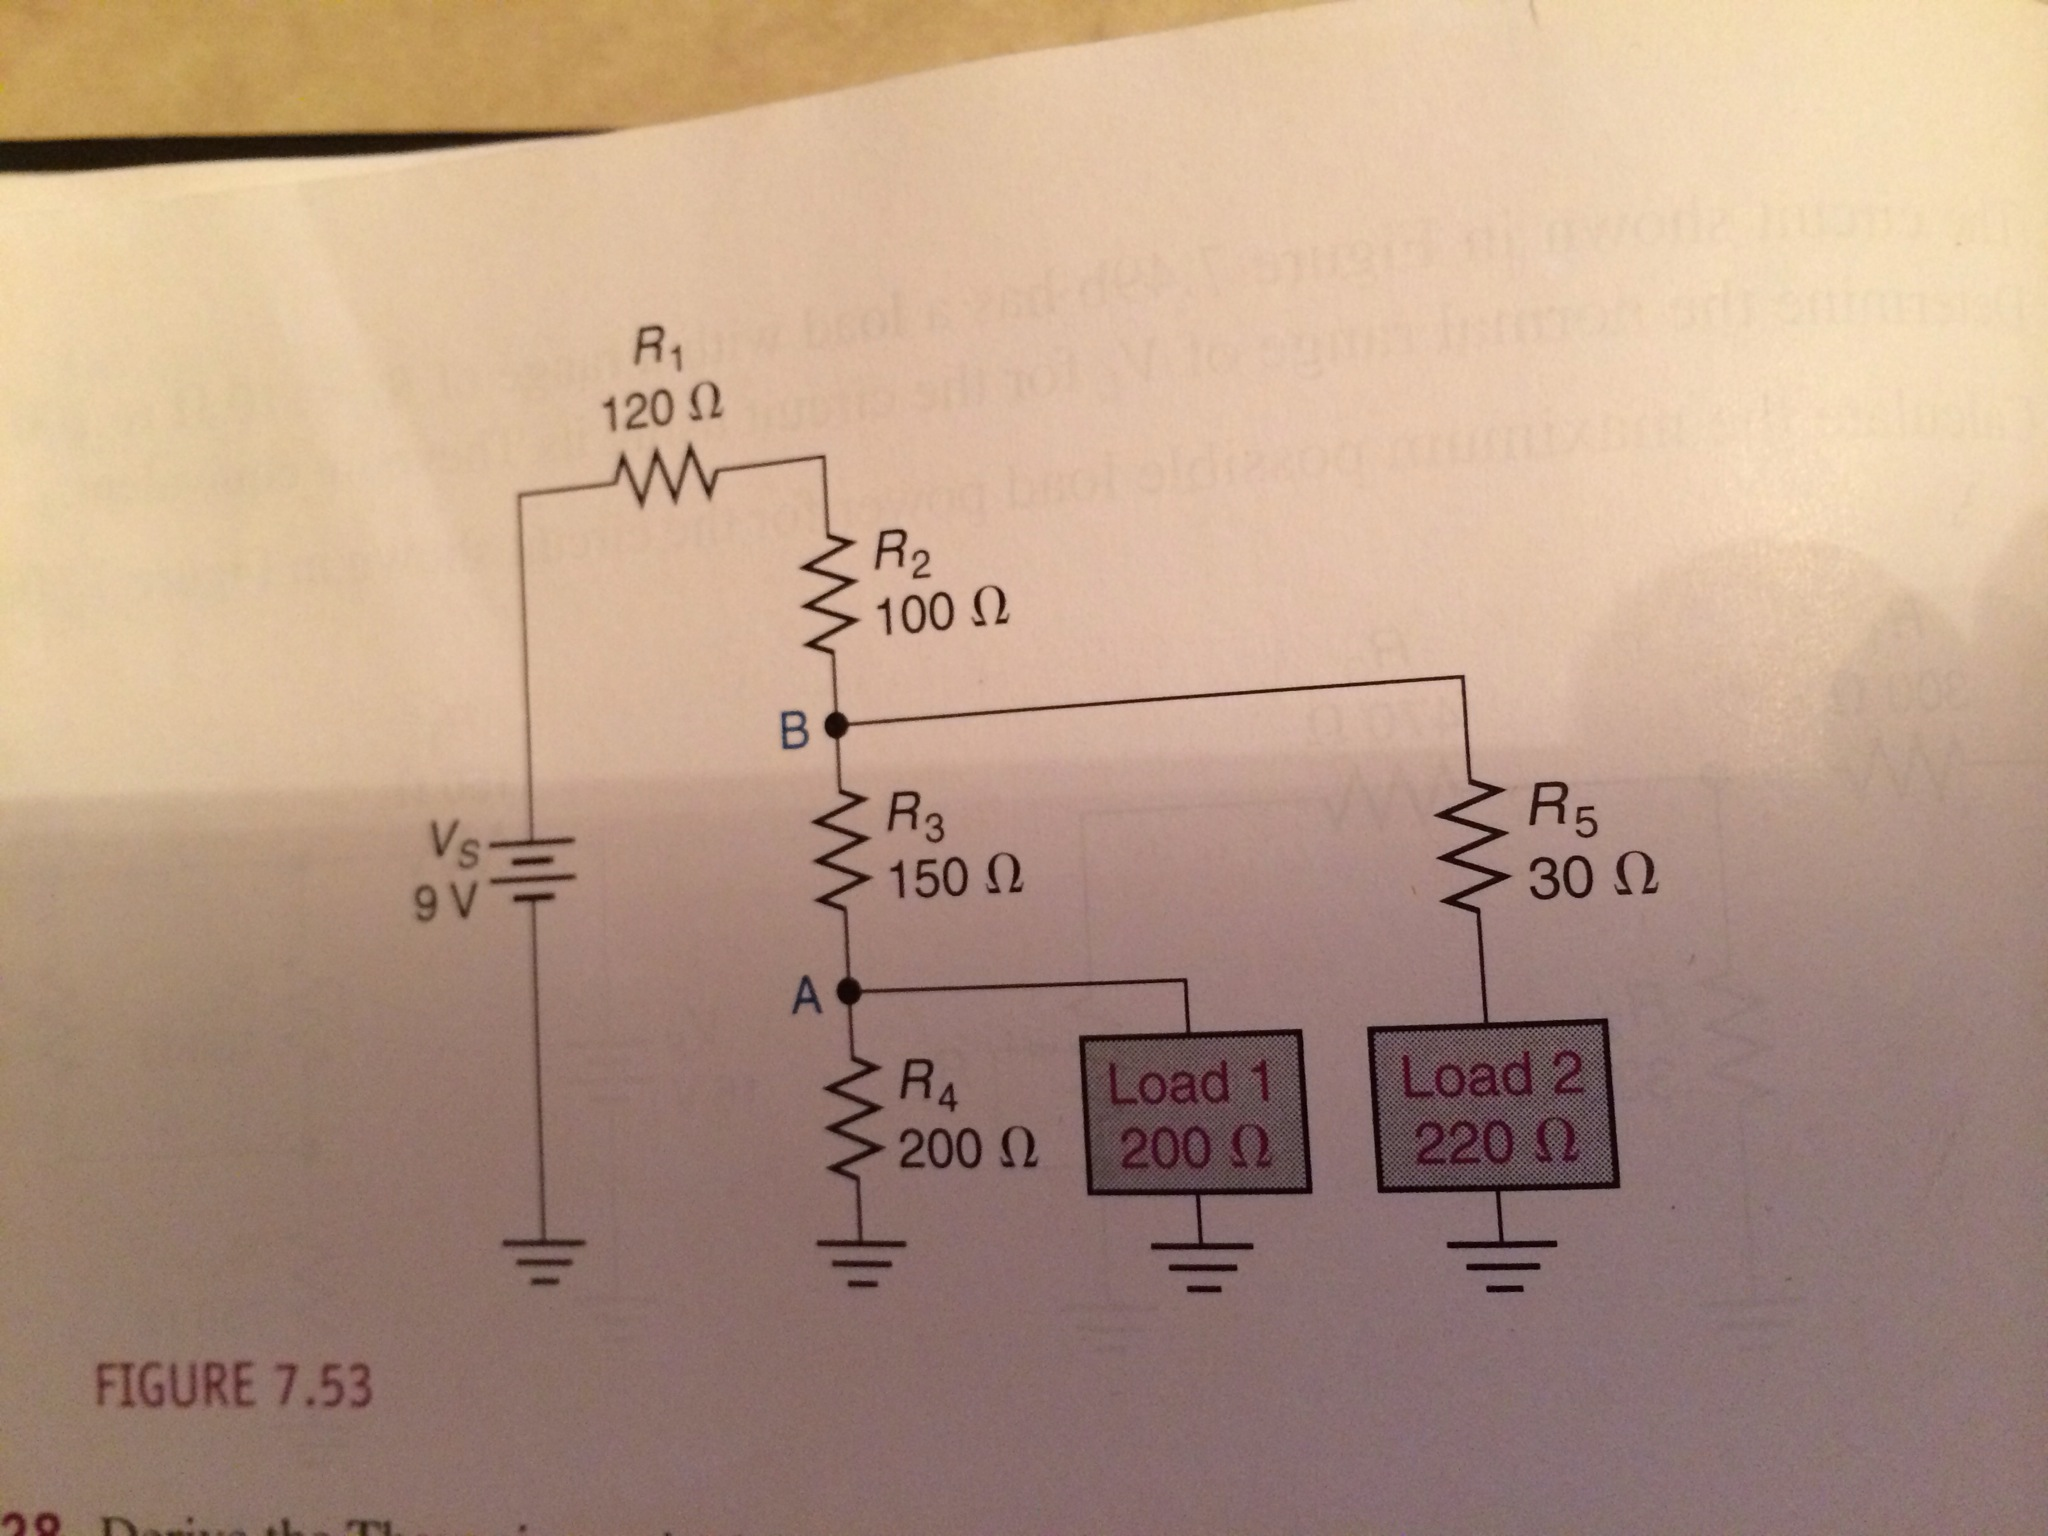 Derive the Thevenin equivalent circuit for load 1